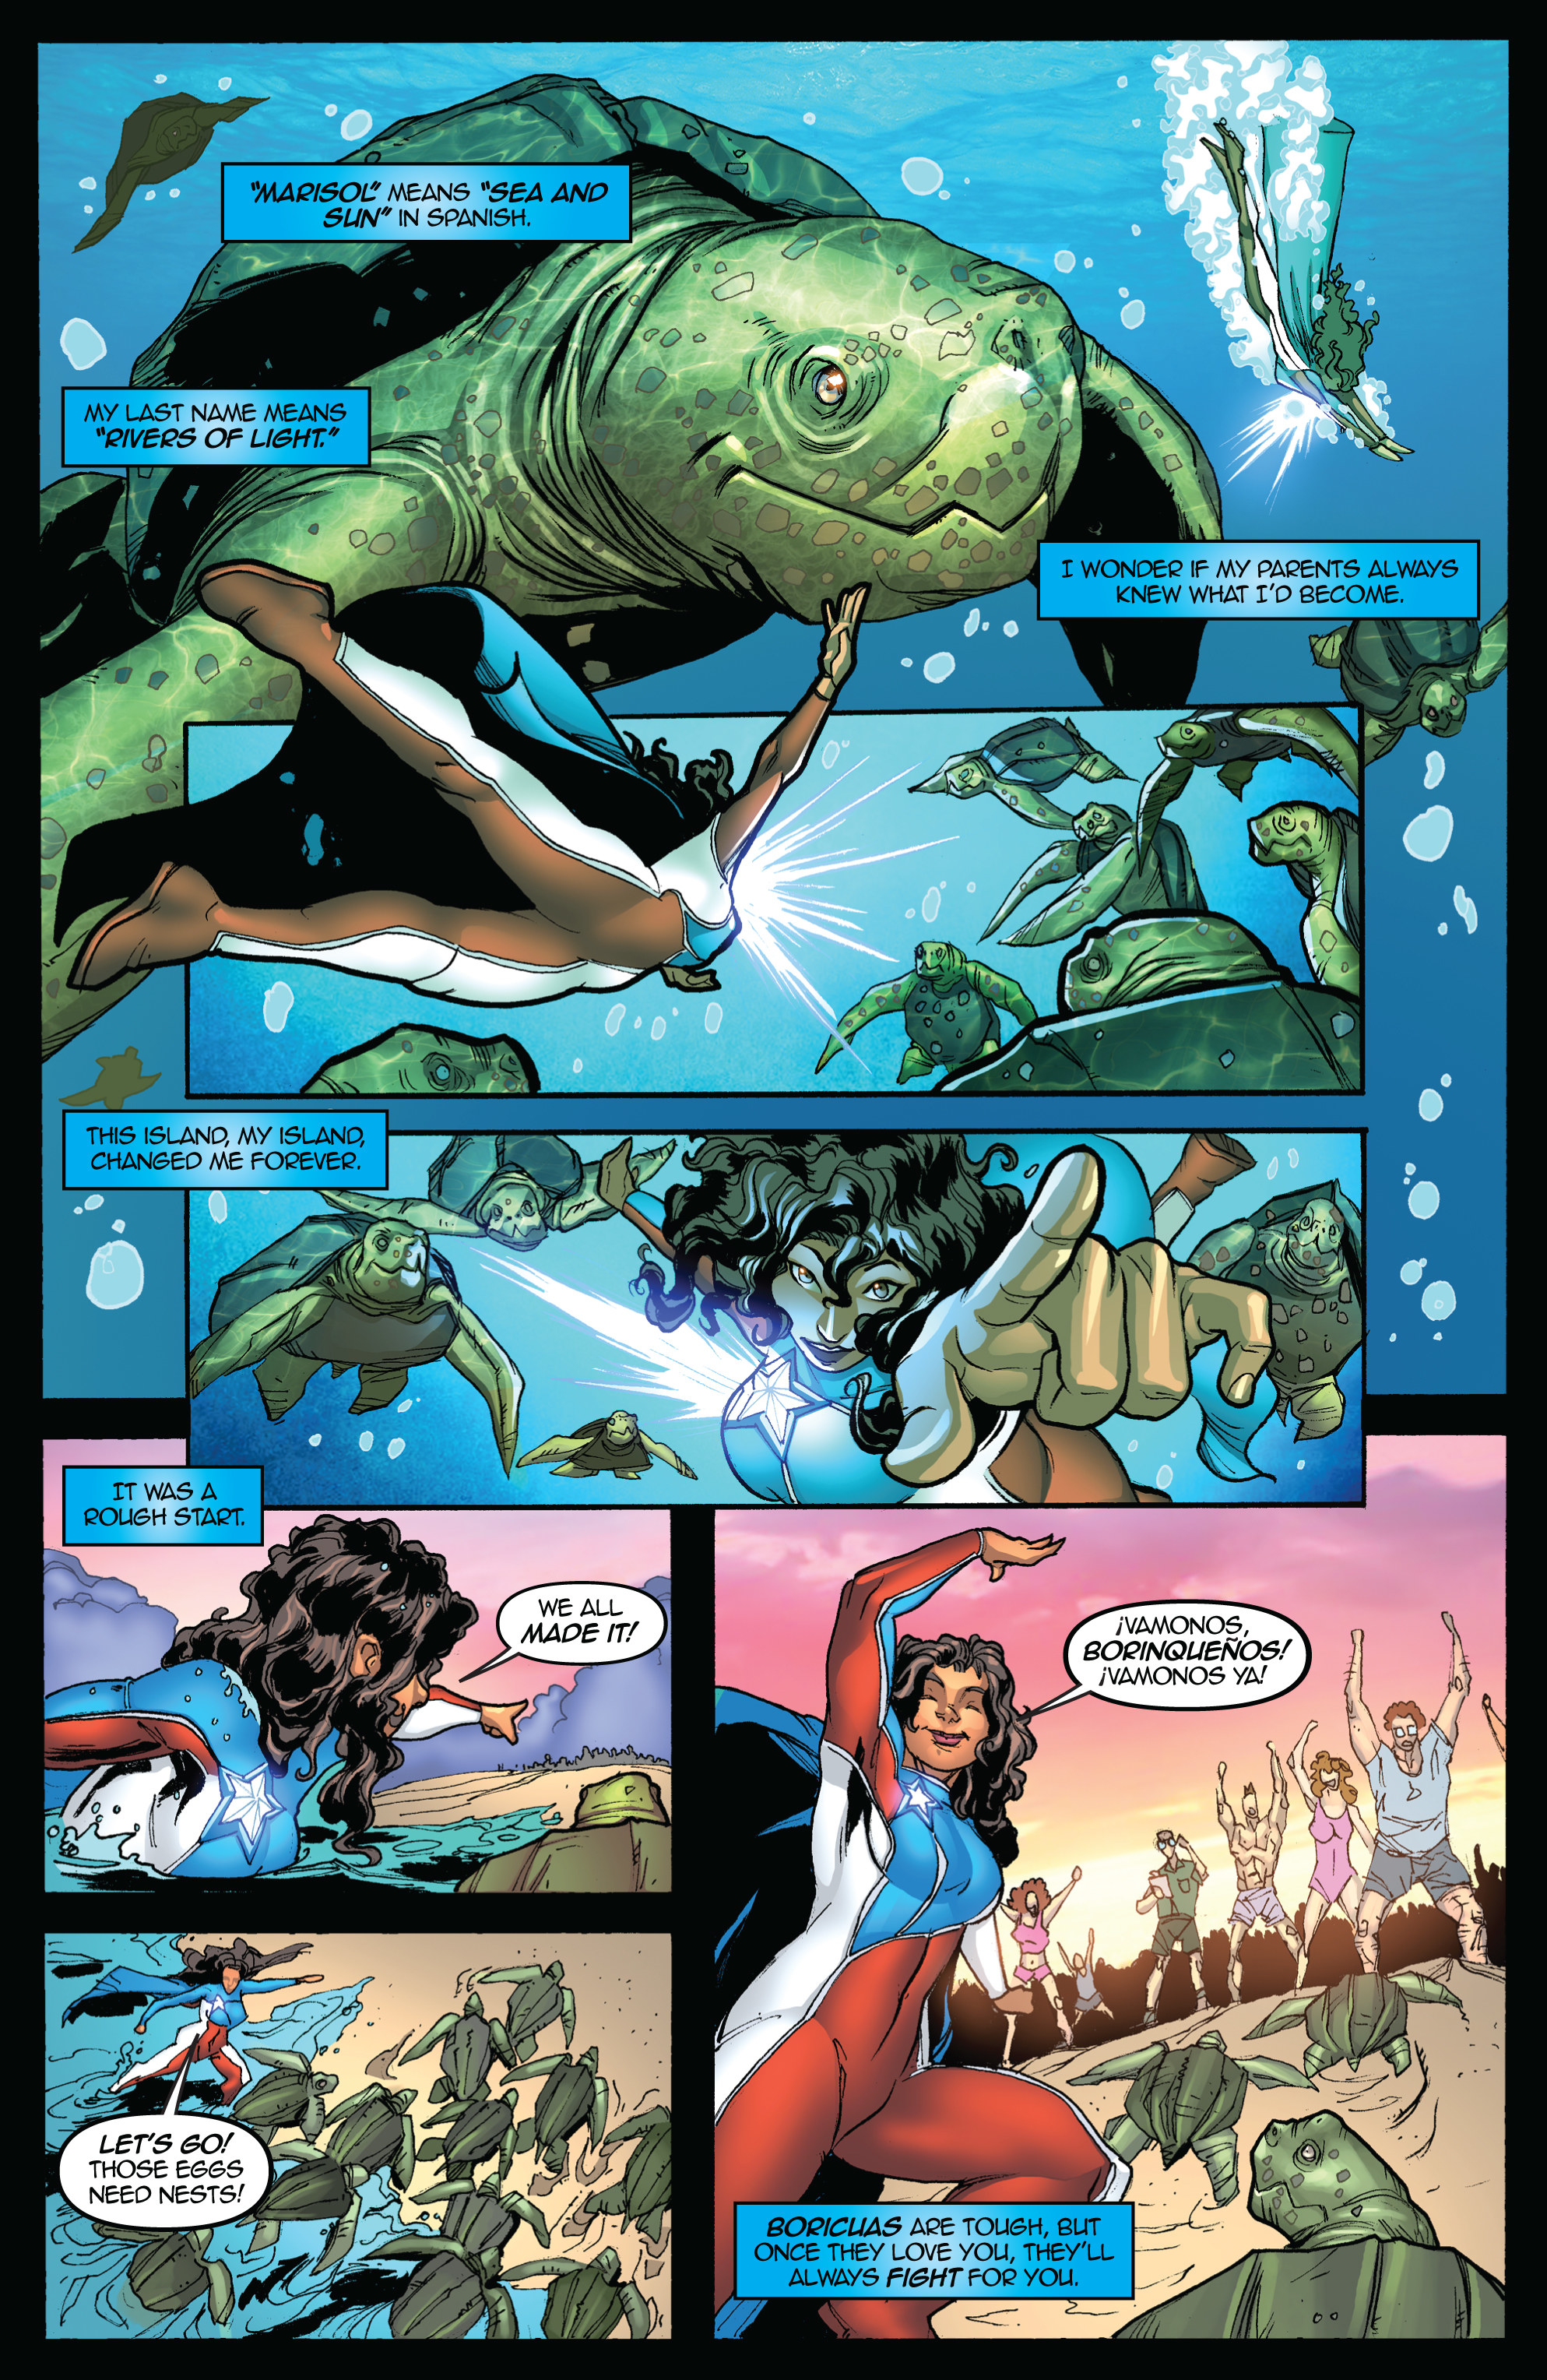 Comic illustration of character named Marisol Rios De La Luz, helping turtles next their eggs in the sand.